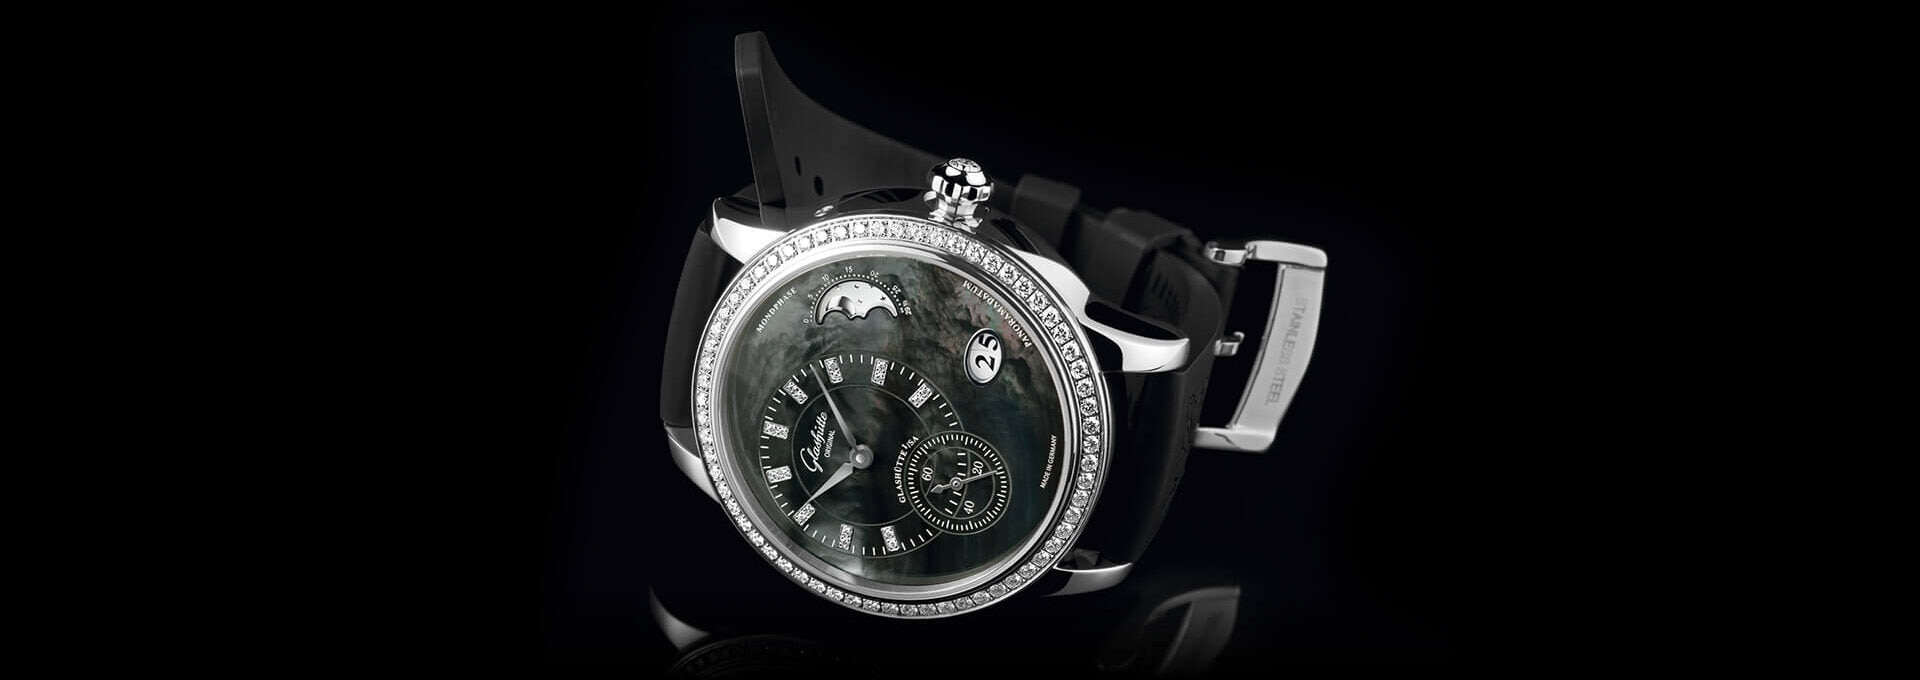 Glashuette_Original-W19012021204-Detail-5